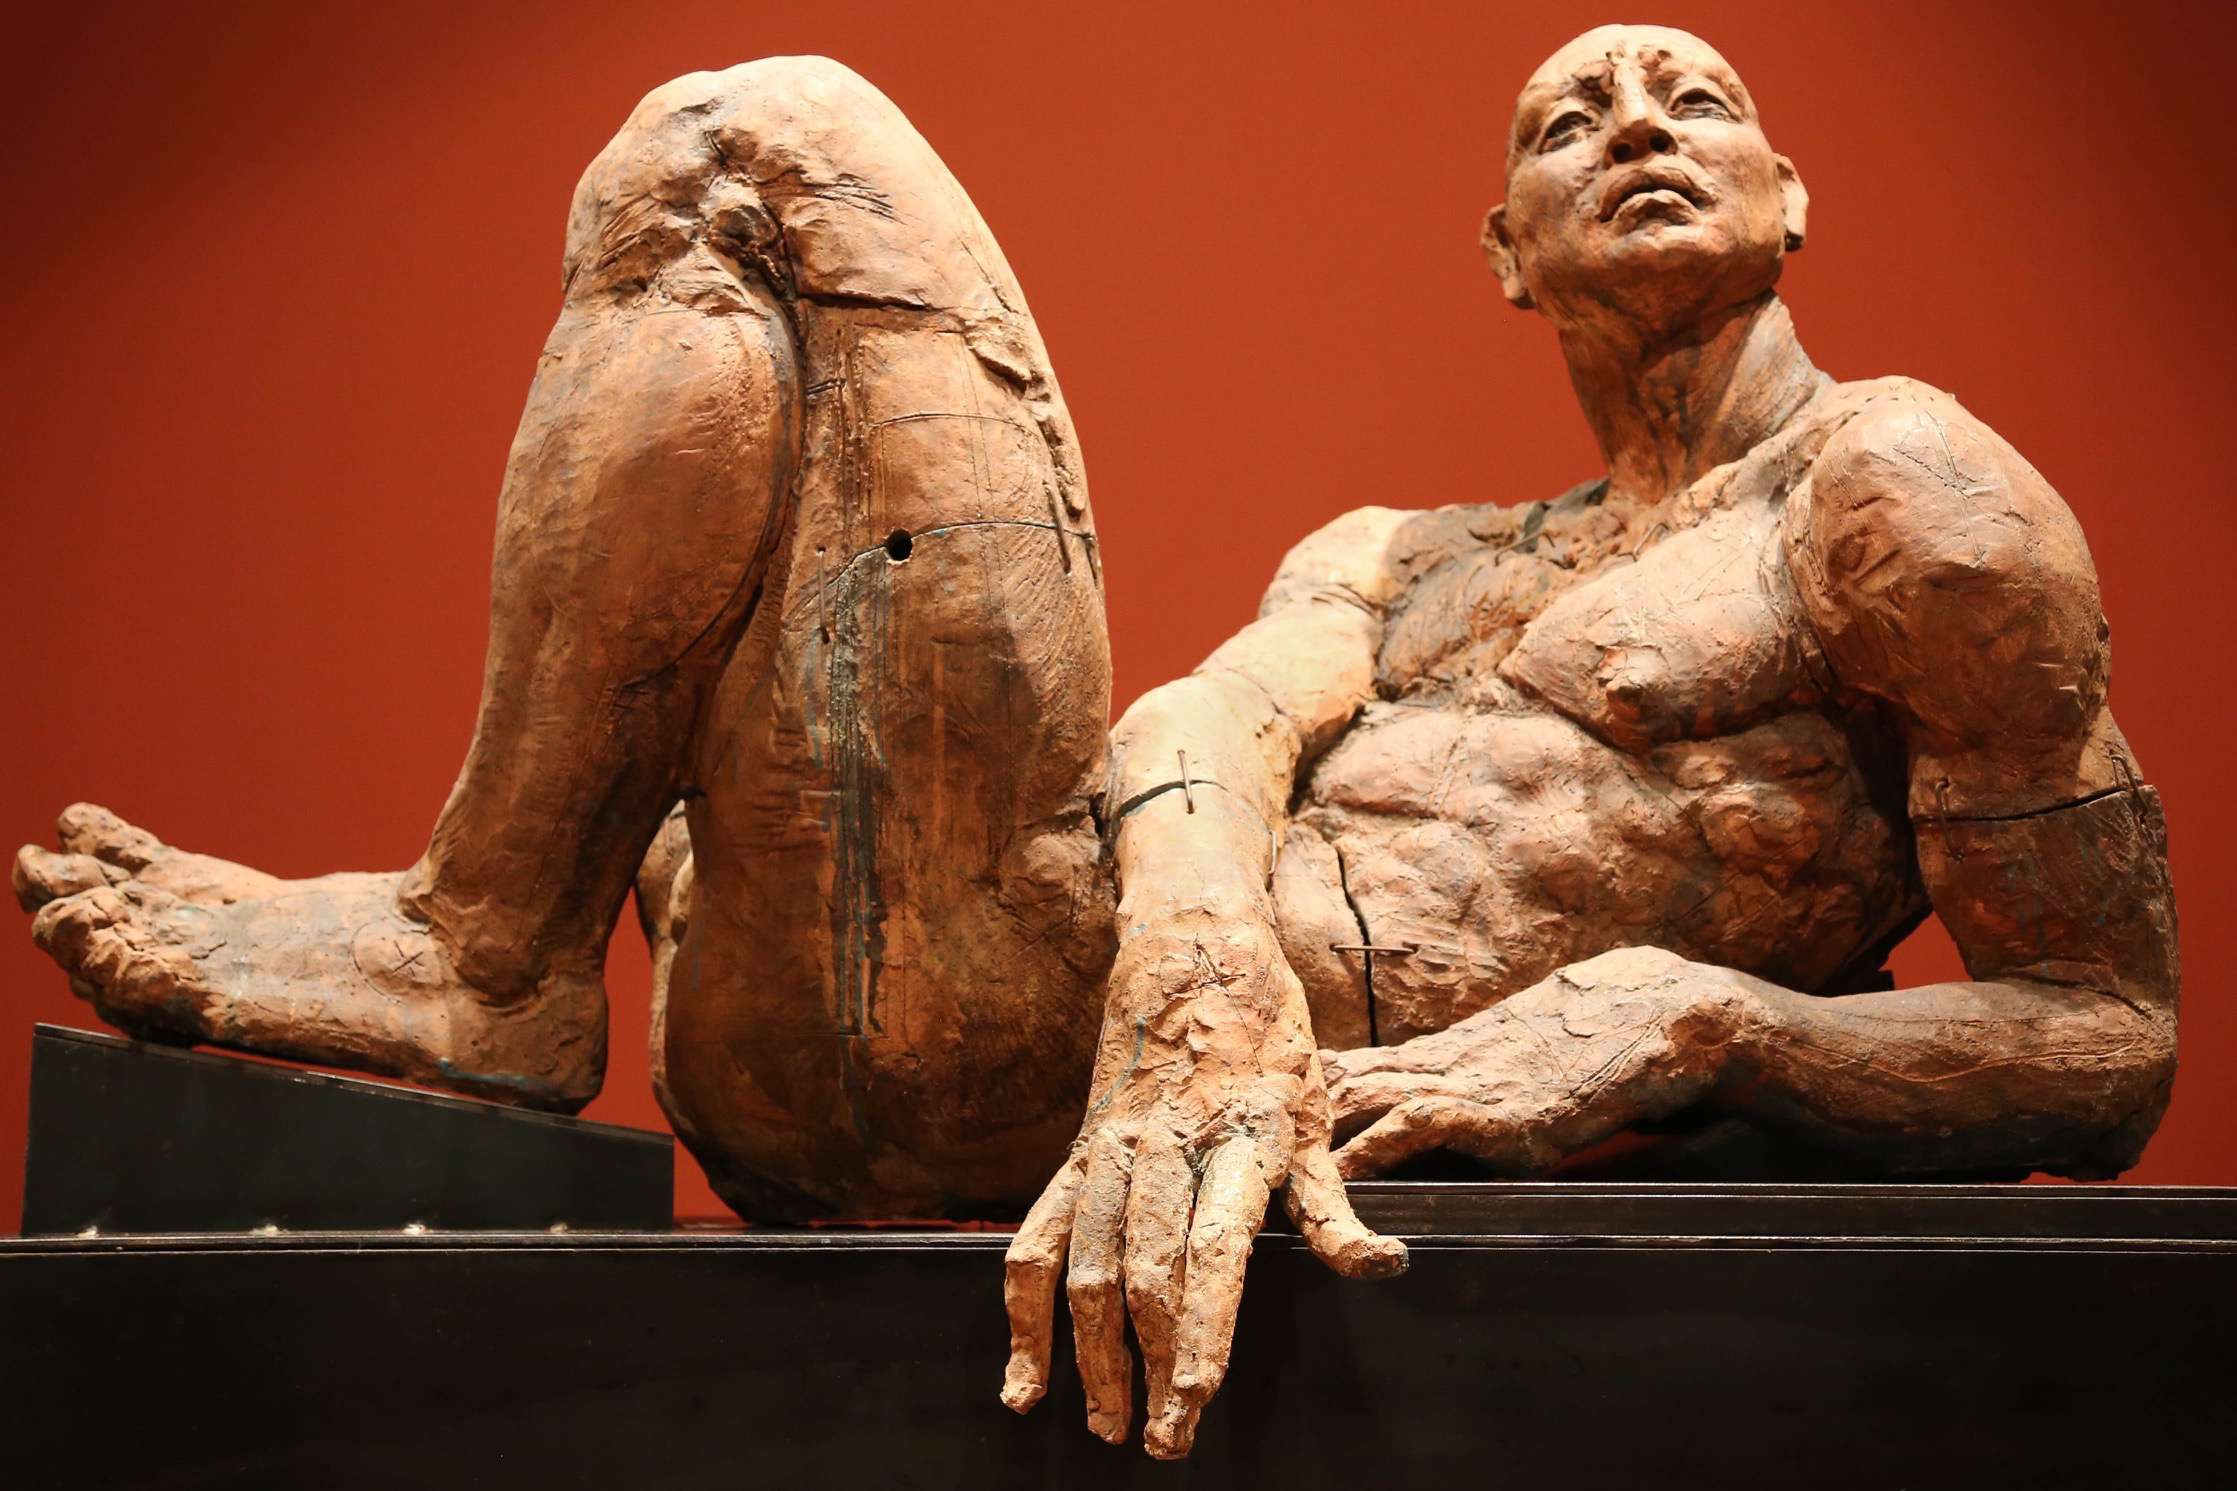 The human figures sculpted by Javier Marin have a life force emanating from within.